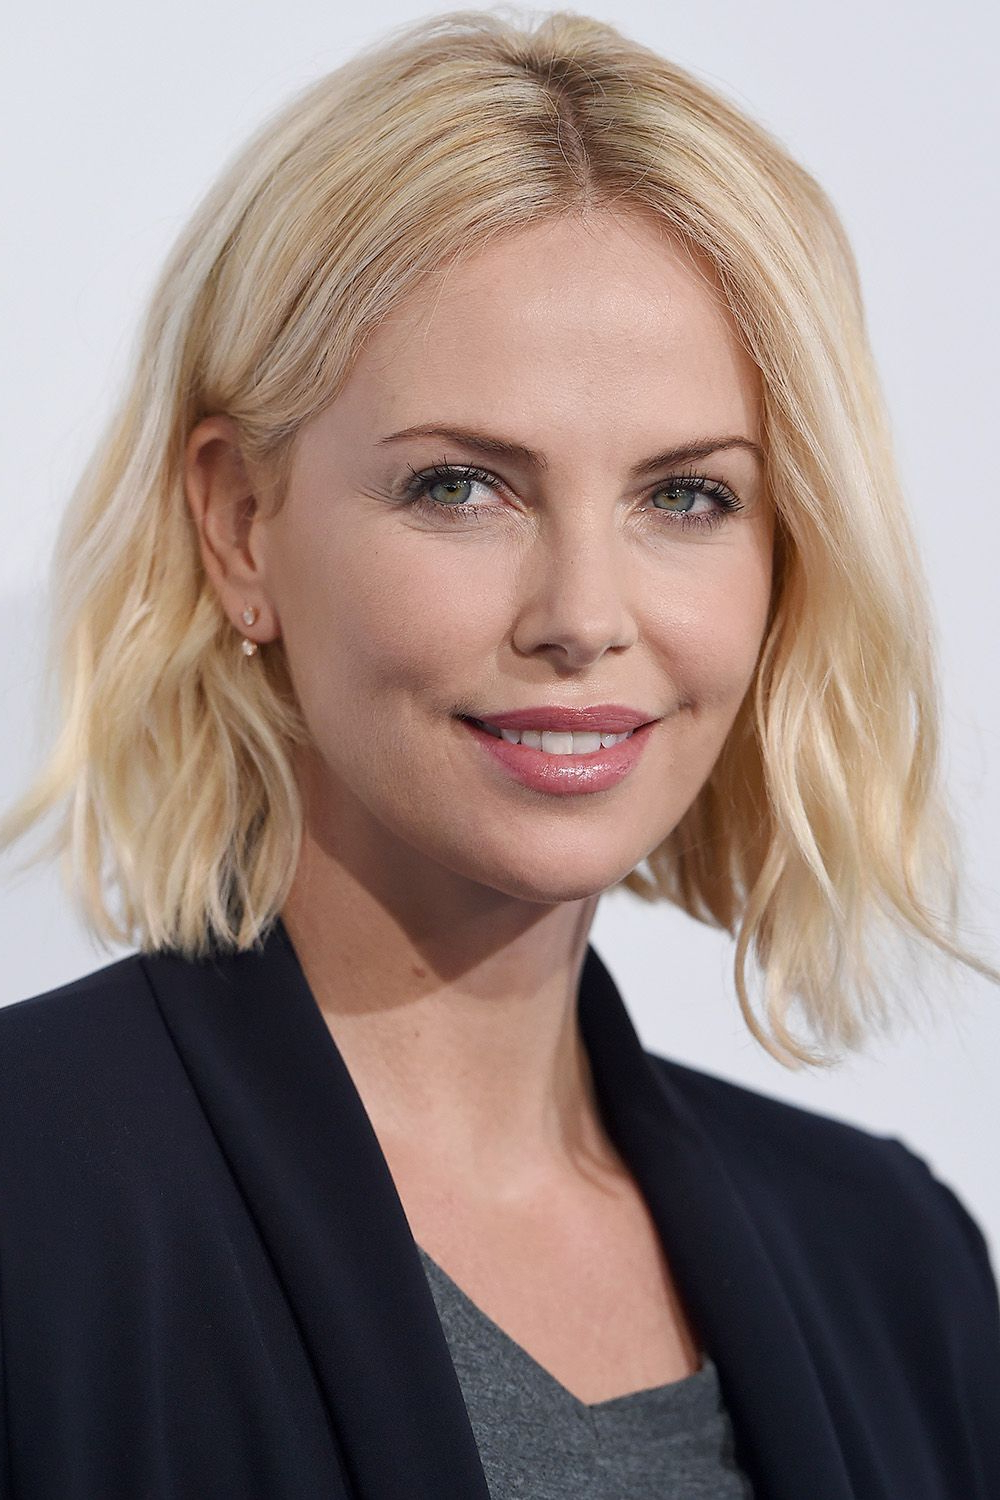 50+ Cute Bob And Lob Haircuts 2018 – Best Celebrity Long Bob Hairstyles Pertaining To Short Hairstyles For High Forehead (View 25 of 25)